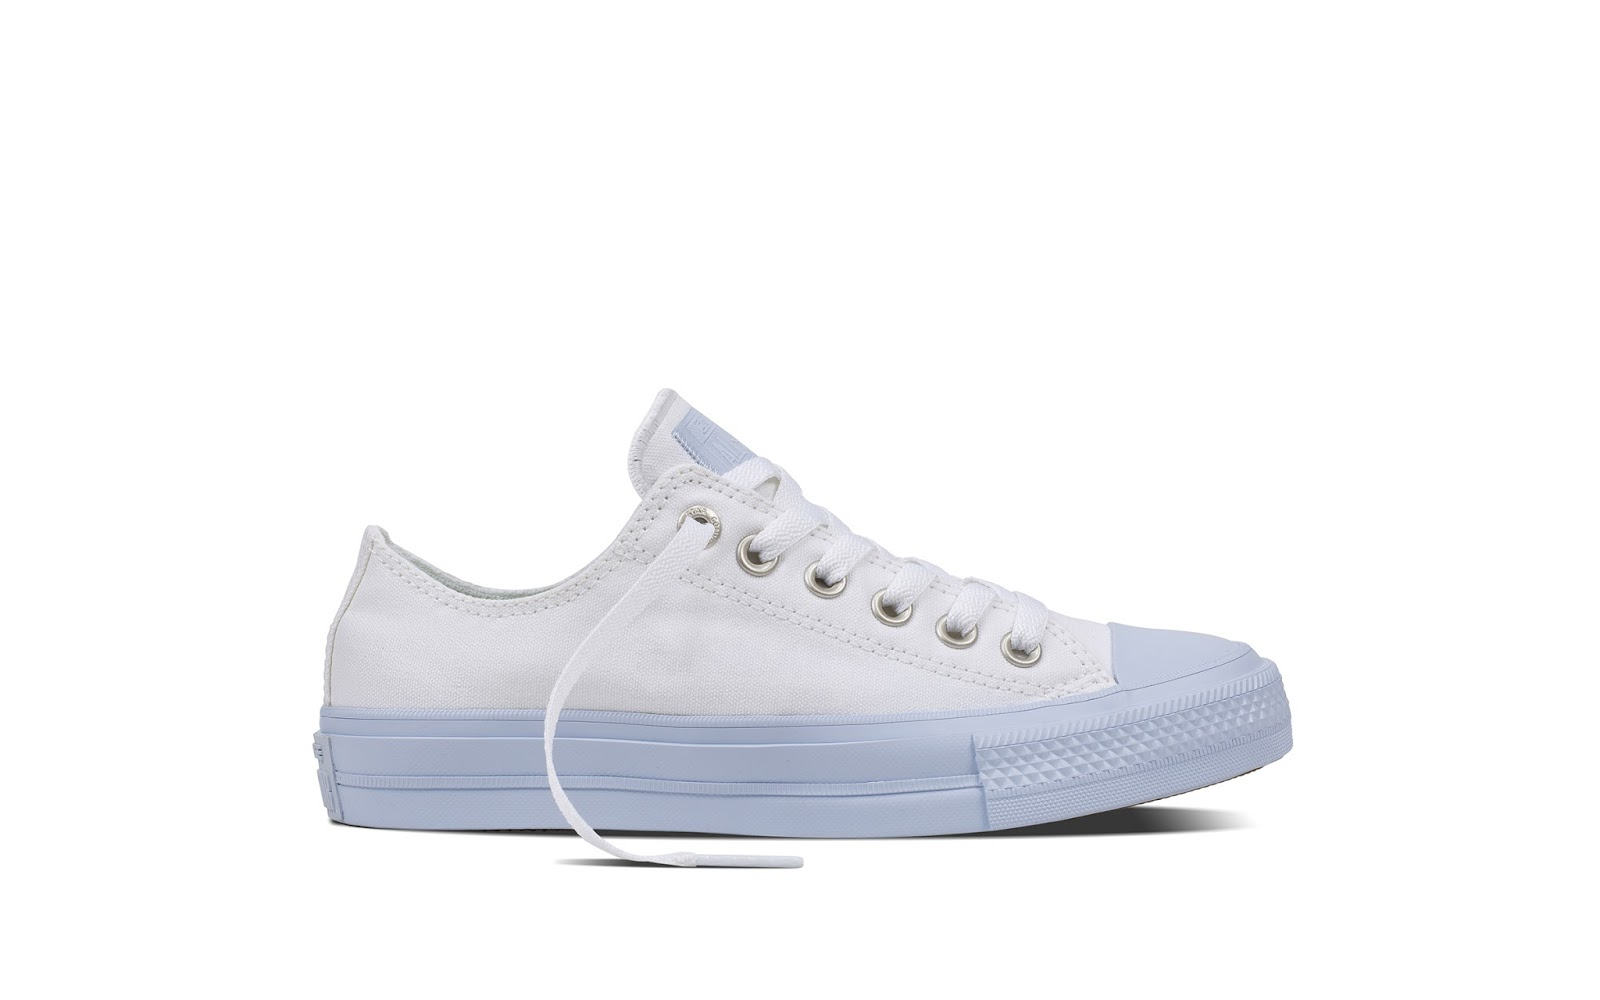 68839fdf1a85 ChuckIIPastelMidsole  Celebrate Summer with Pastel-colored Chucks ...